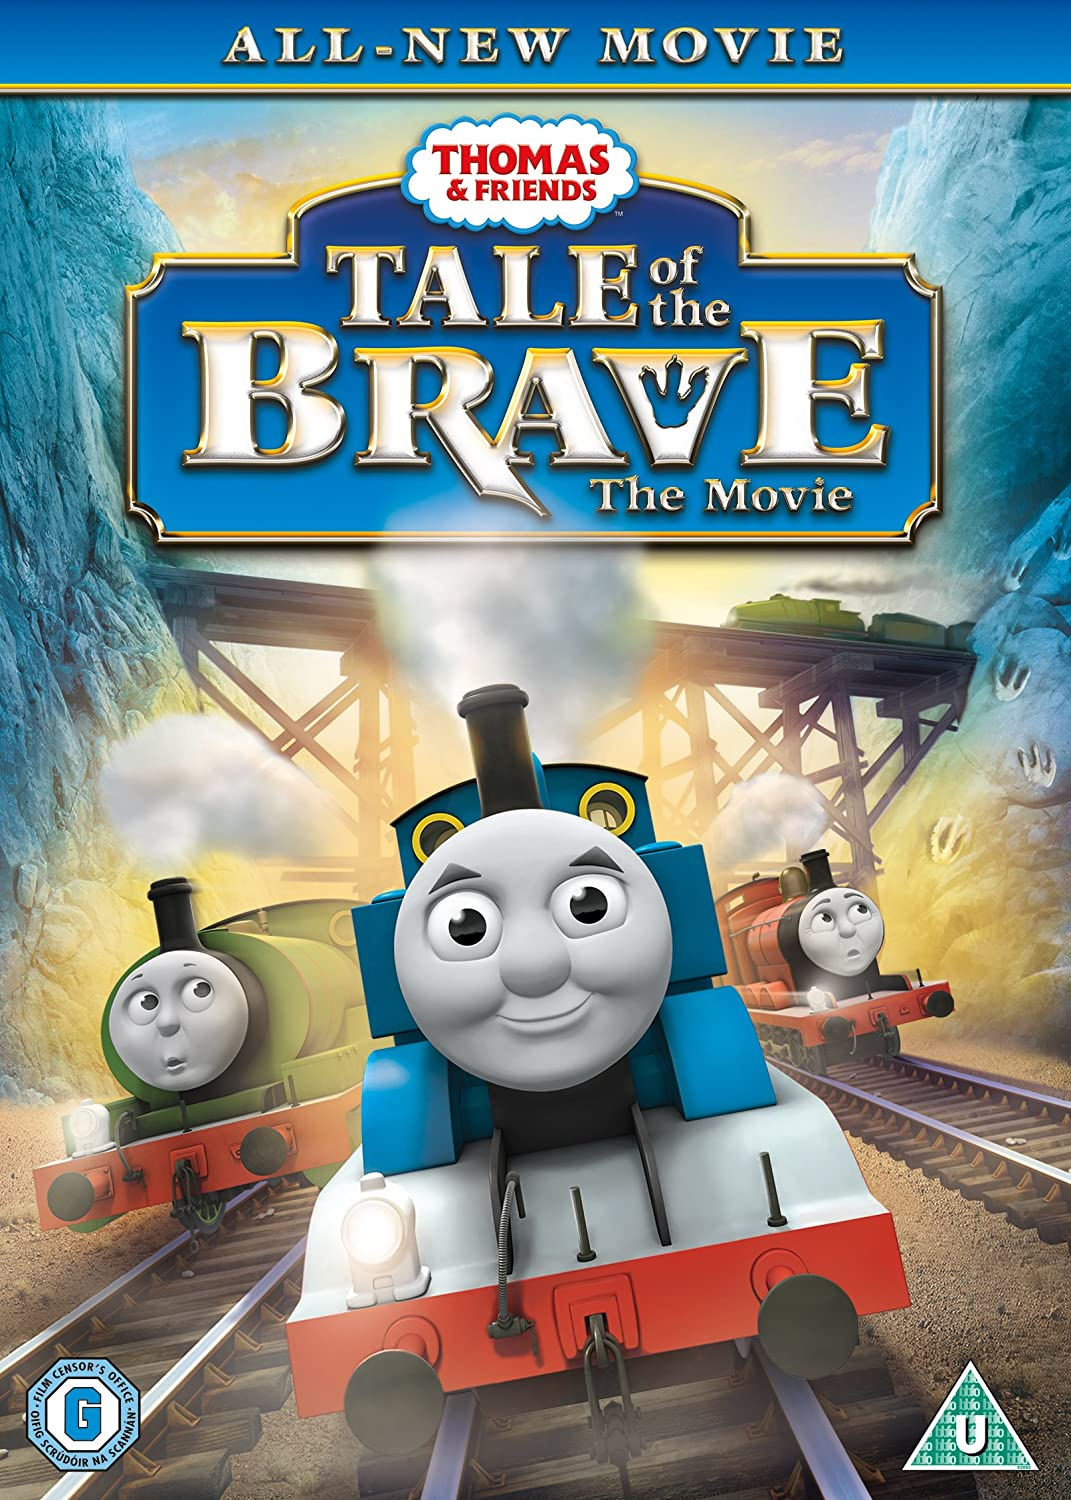 123 teach me tank game - Thomas Friends Tale Of The Brave Dvd Amazon Co Uk Mark Moraghan Ben Small Keith Wickham Clive Mantle Jonathan Broadbent Olivia Colman